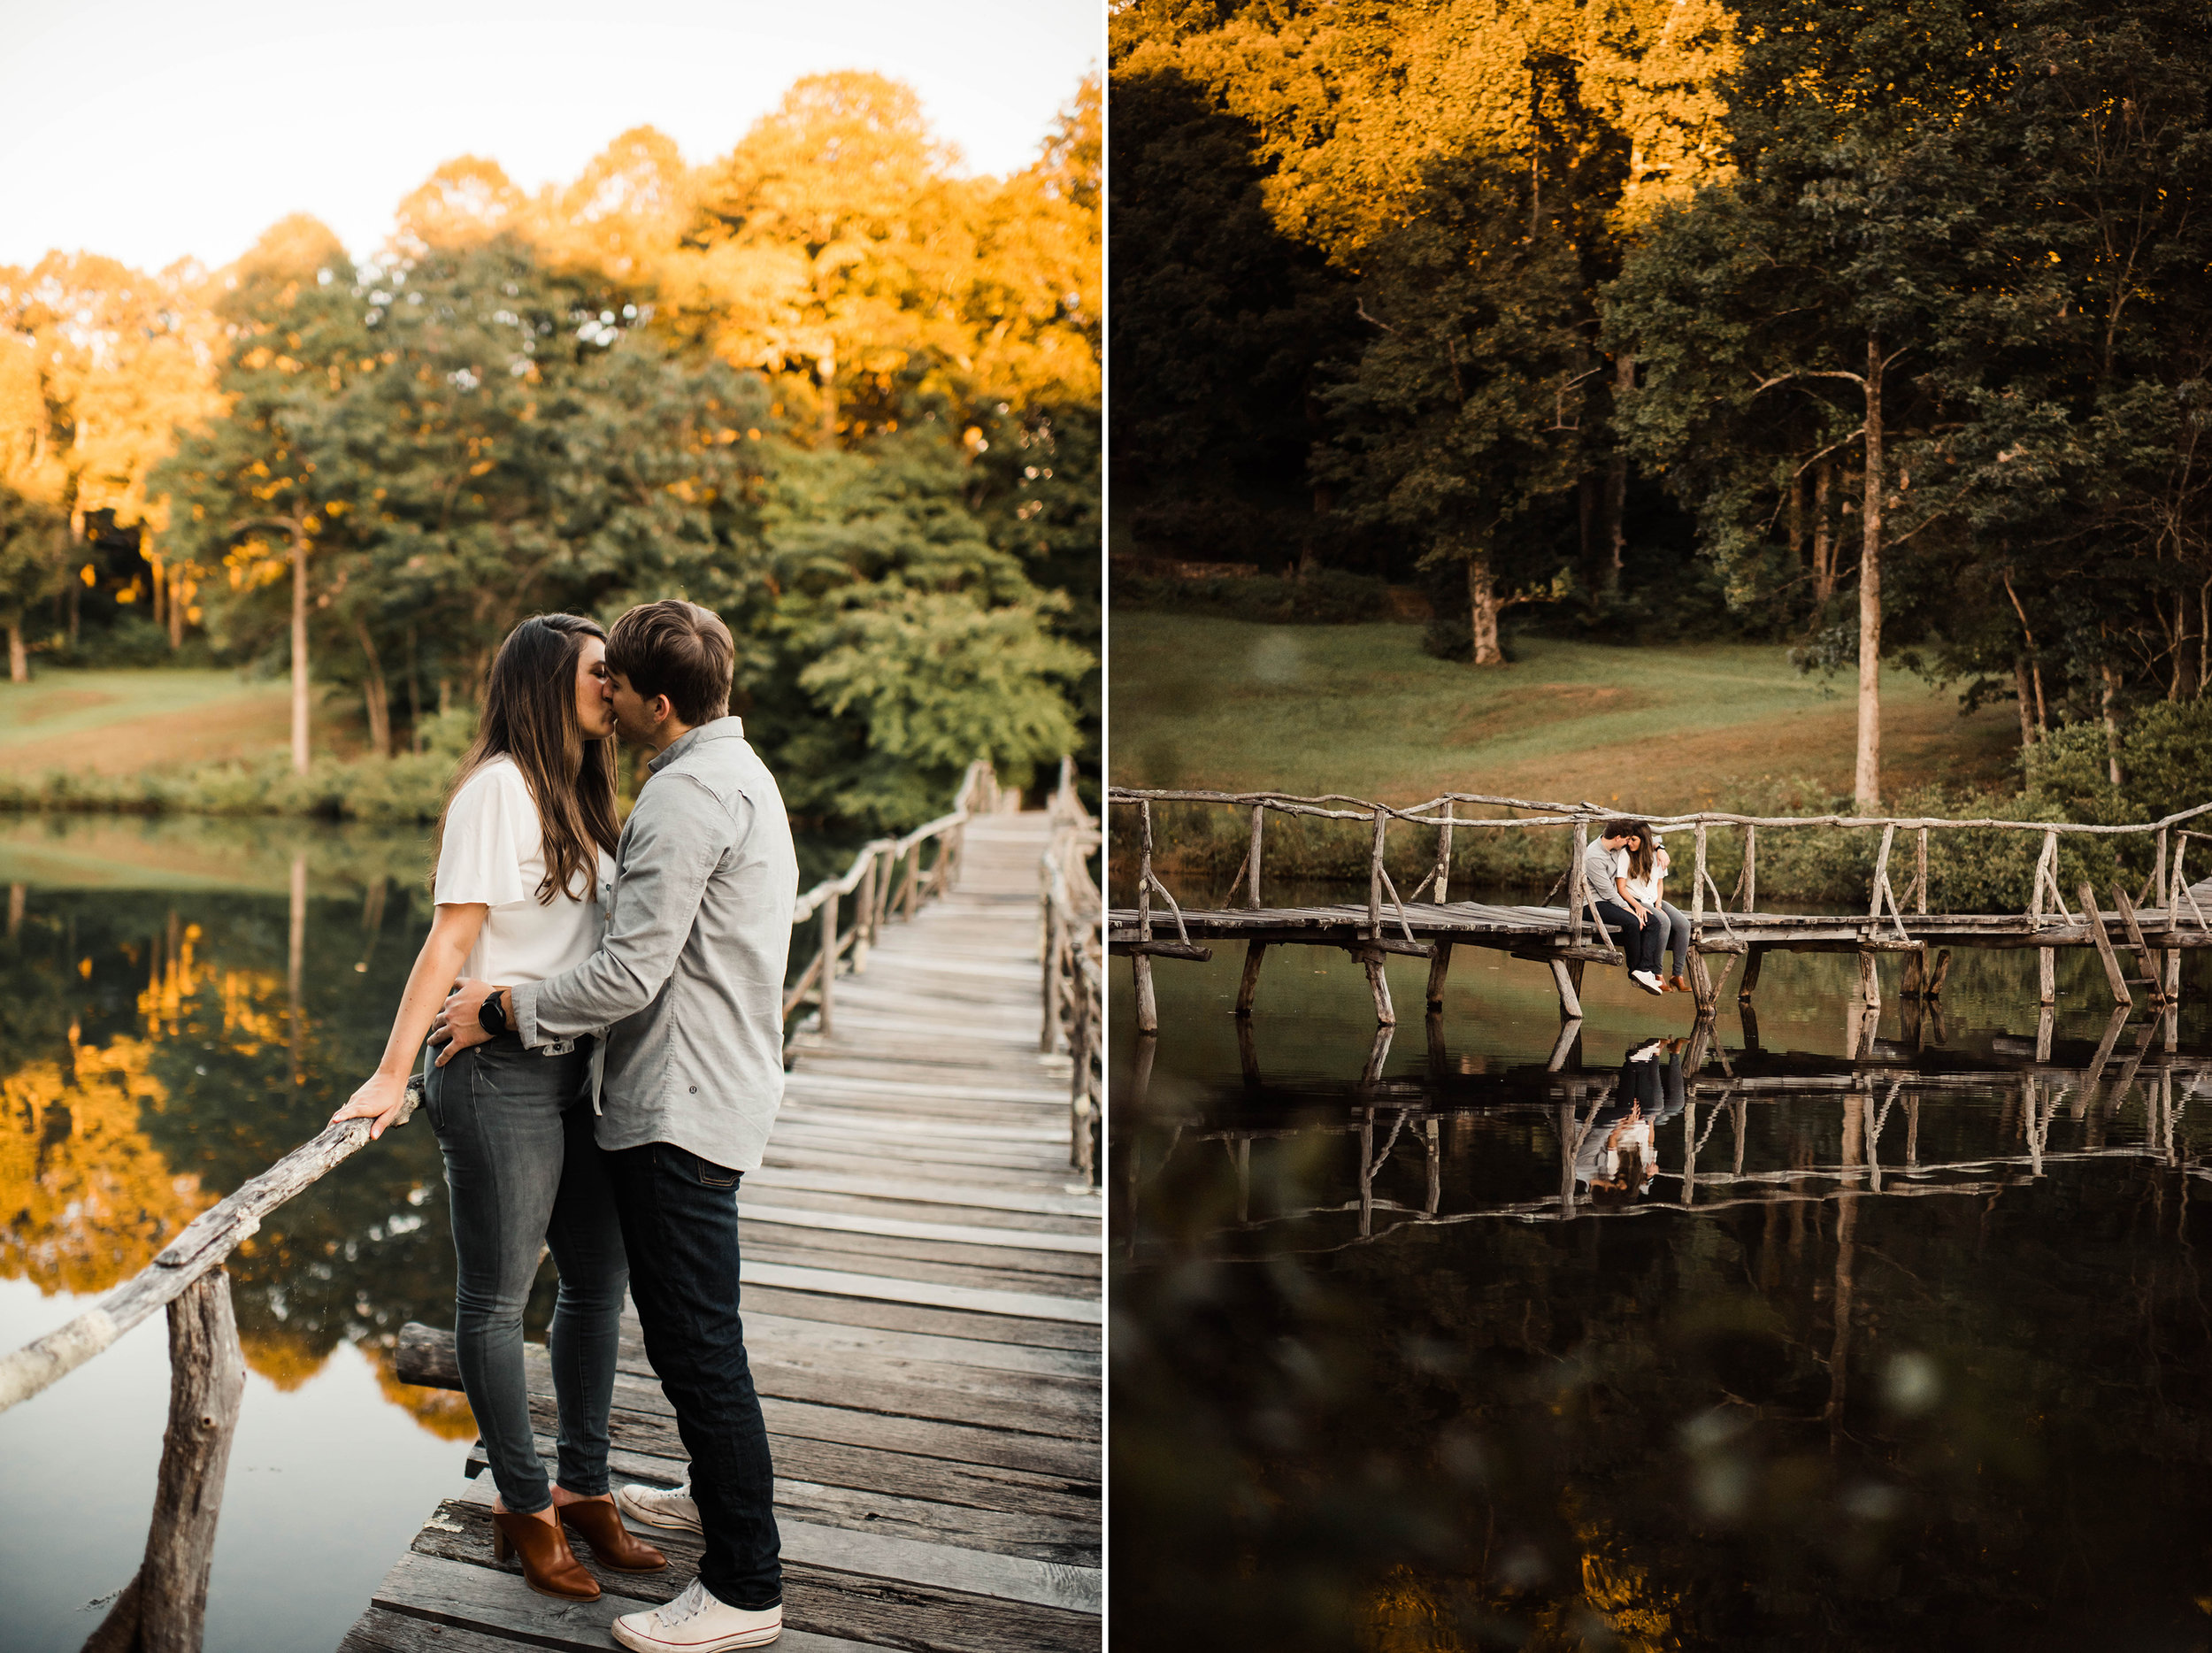 san francisco oakland bay area california sf atlanta georgia camp wes anderson moonrise kingdom inspired canoe engagement nontraditional wedding photographer -346.jpg